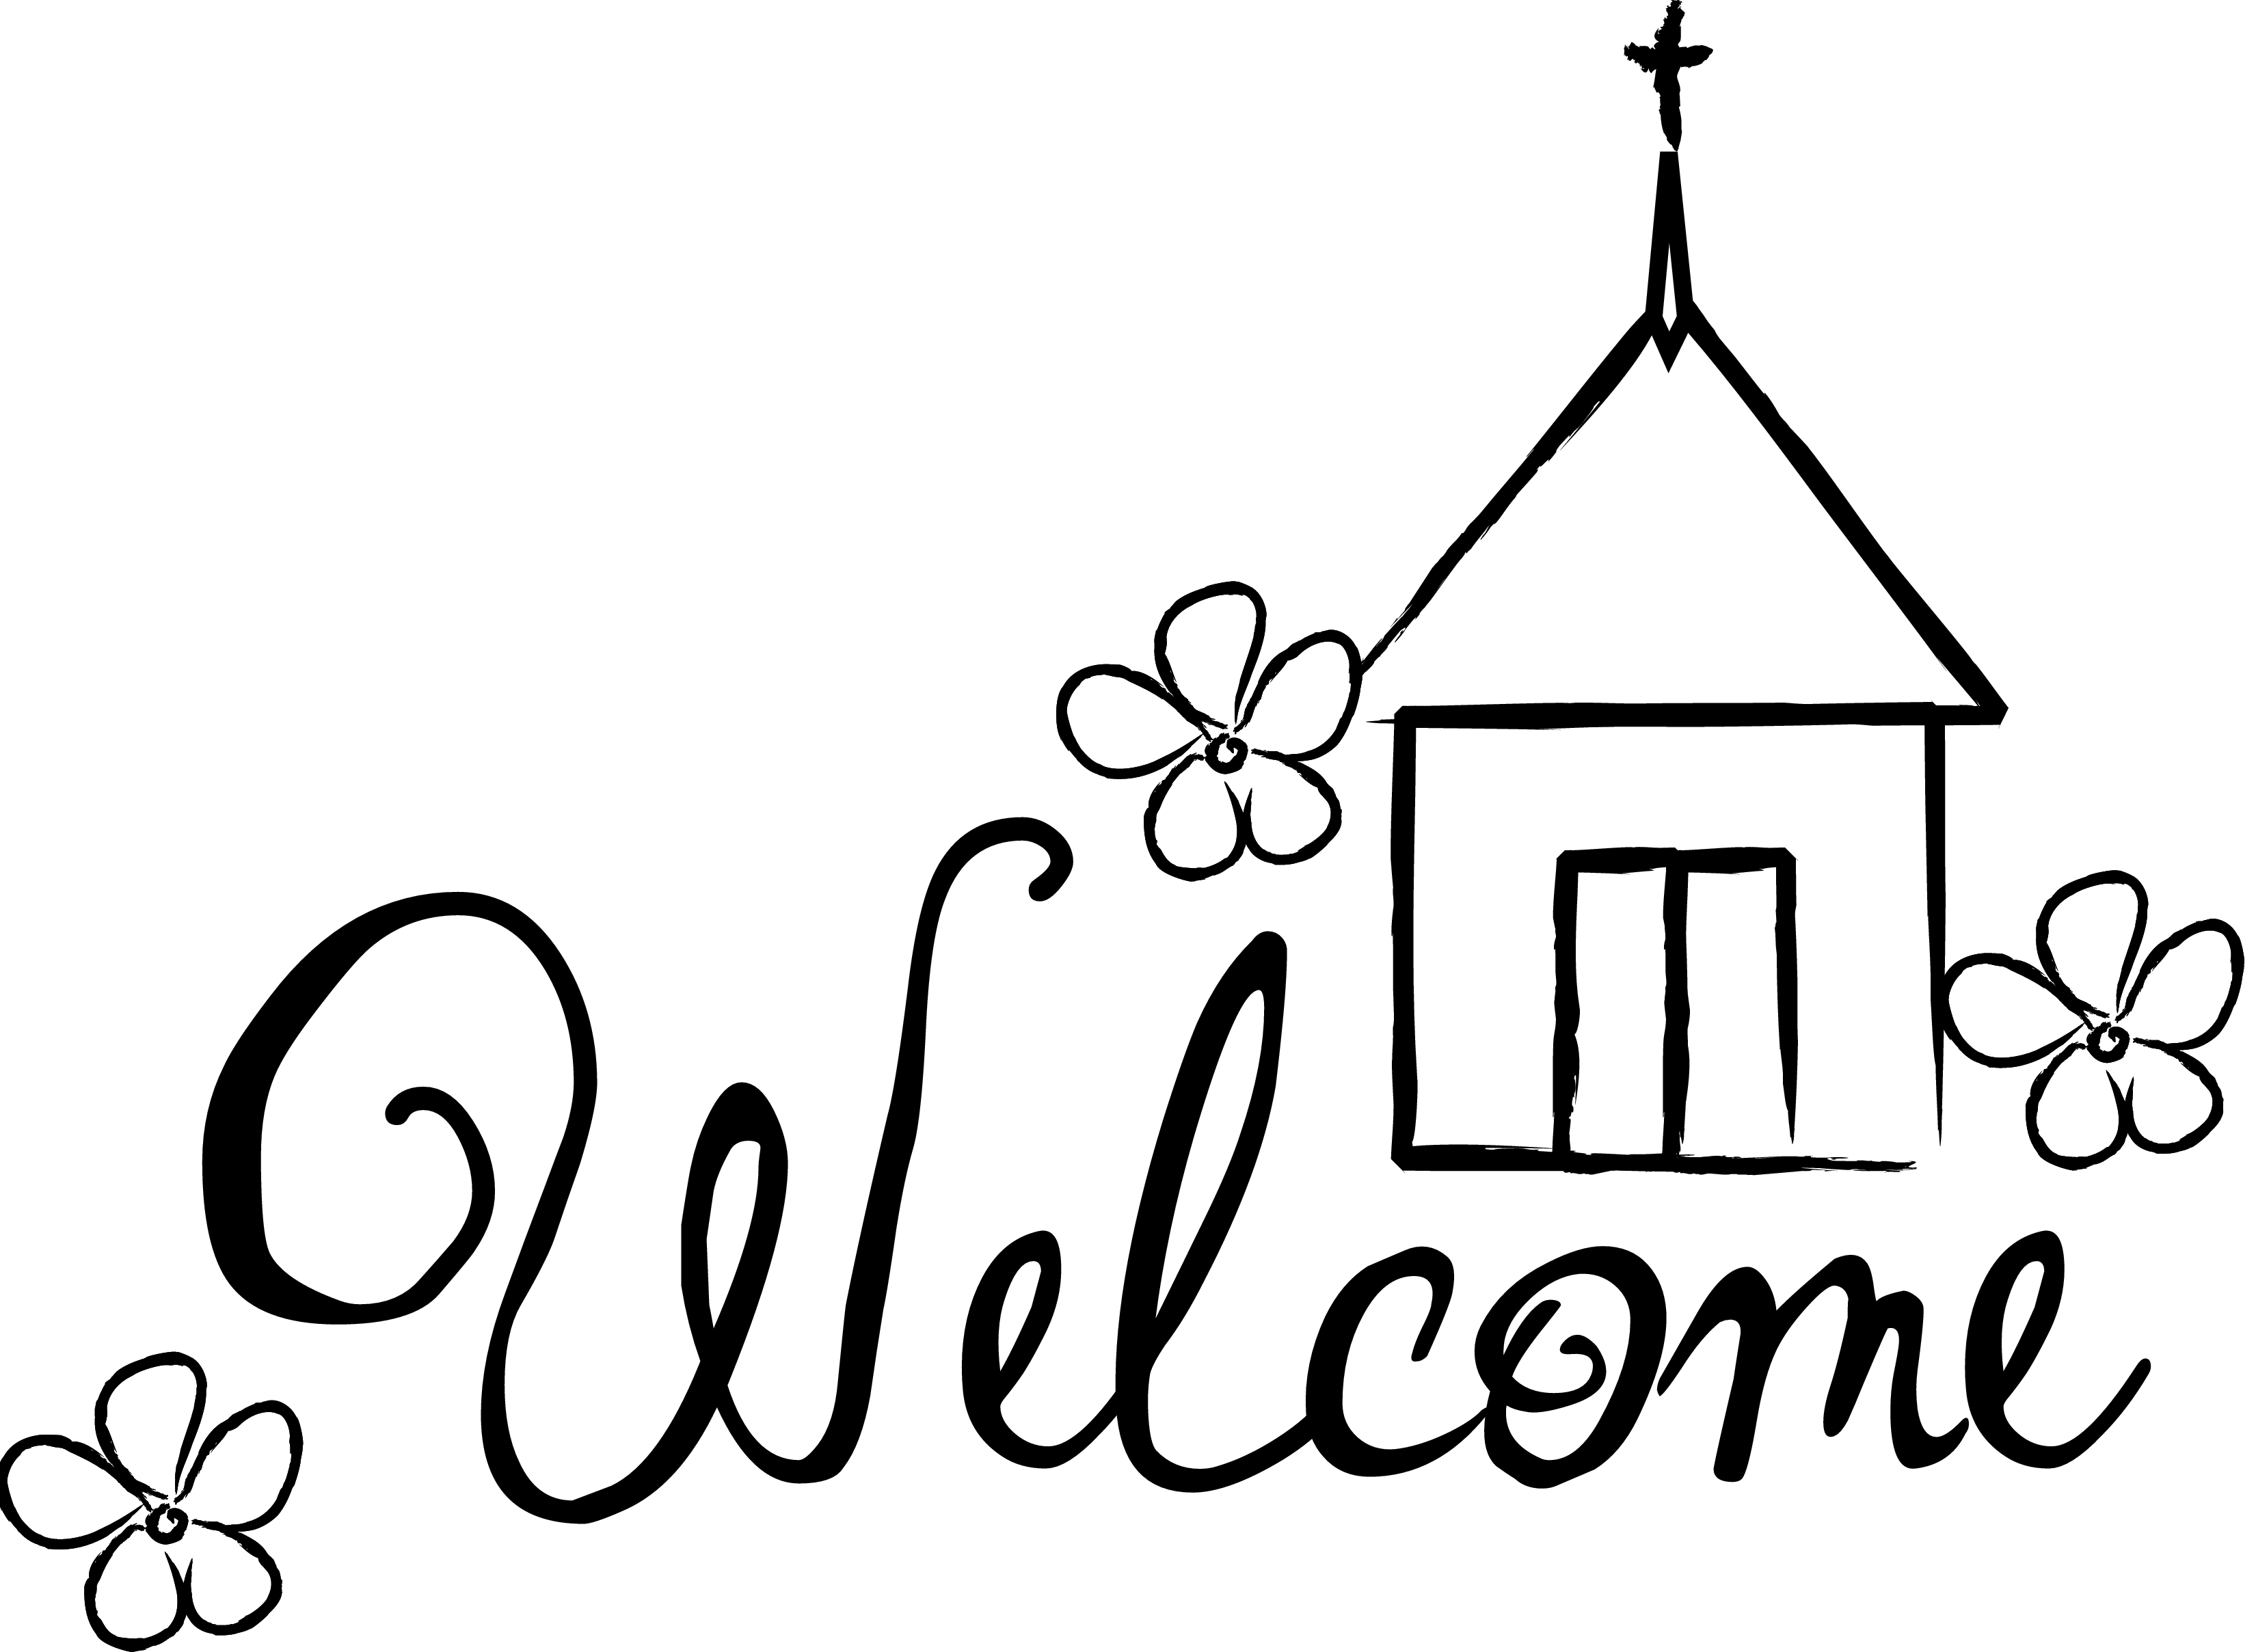 welcome clipart black and white 9 » clipart station